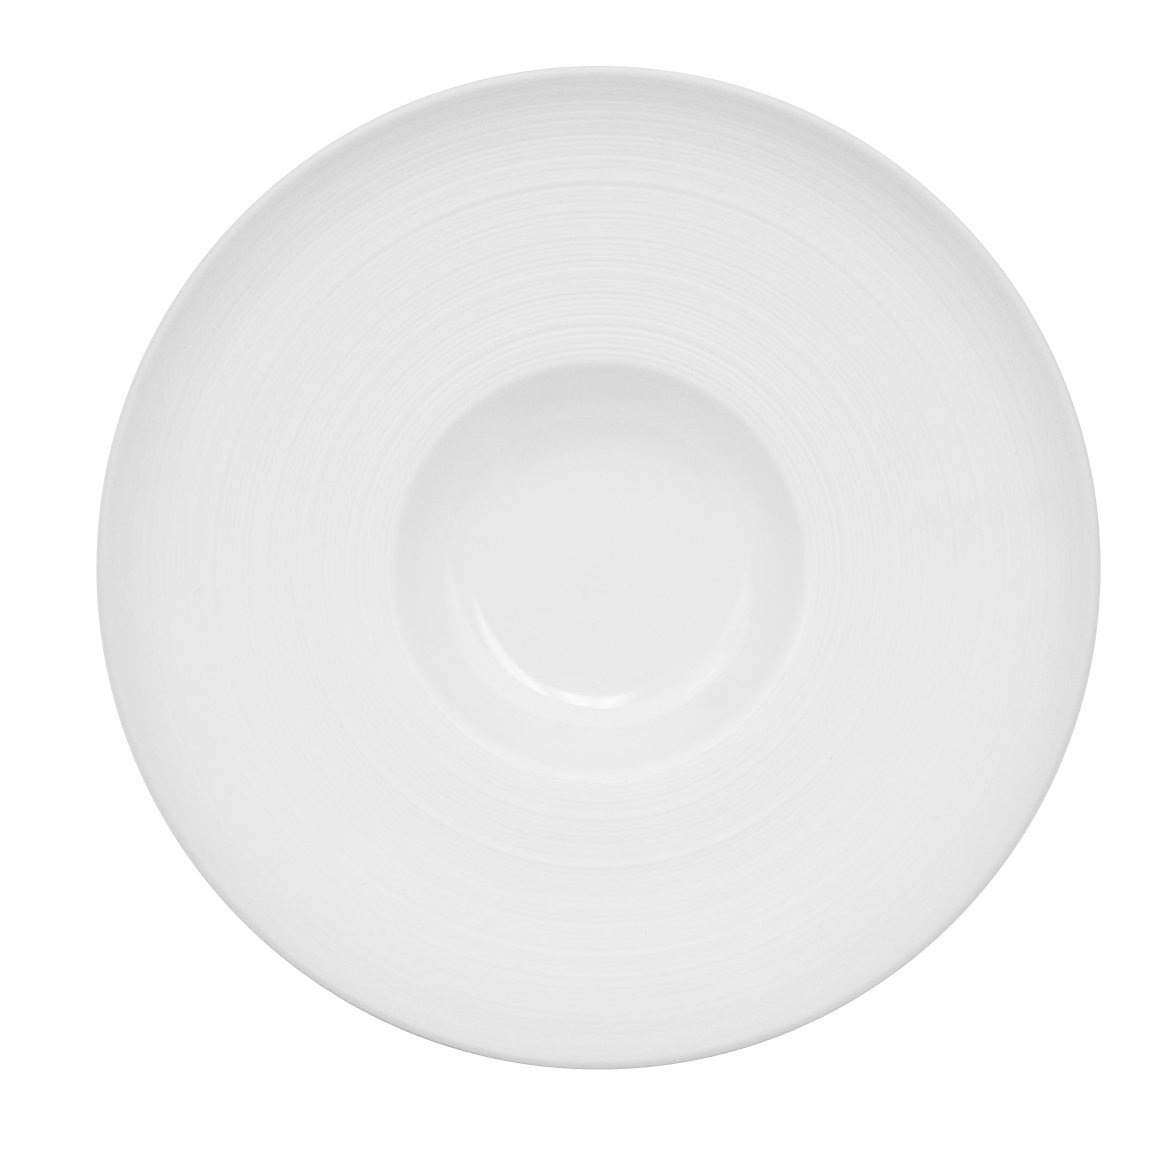 CAC China TST-H8 Transitions 8-Inch 5-Ounce Non-Glare Glaze Super White Porcelain Hat Shape Gourmet Bowl, Box of 24